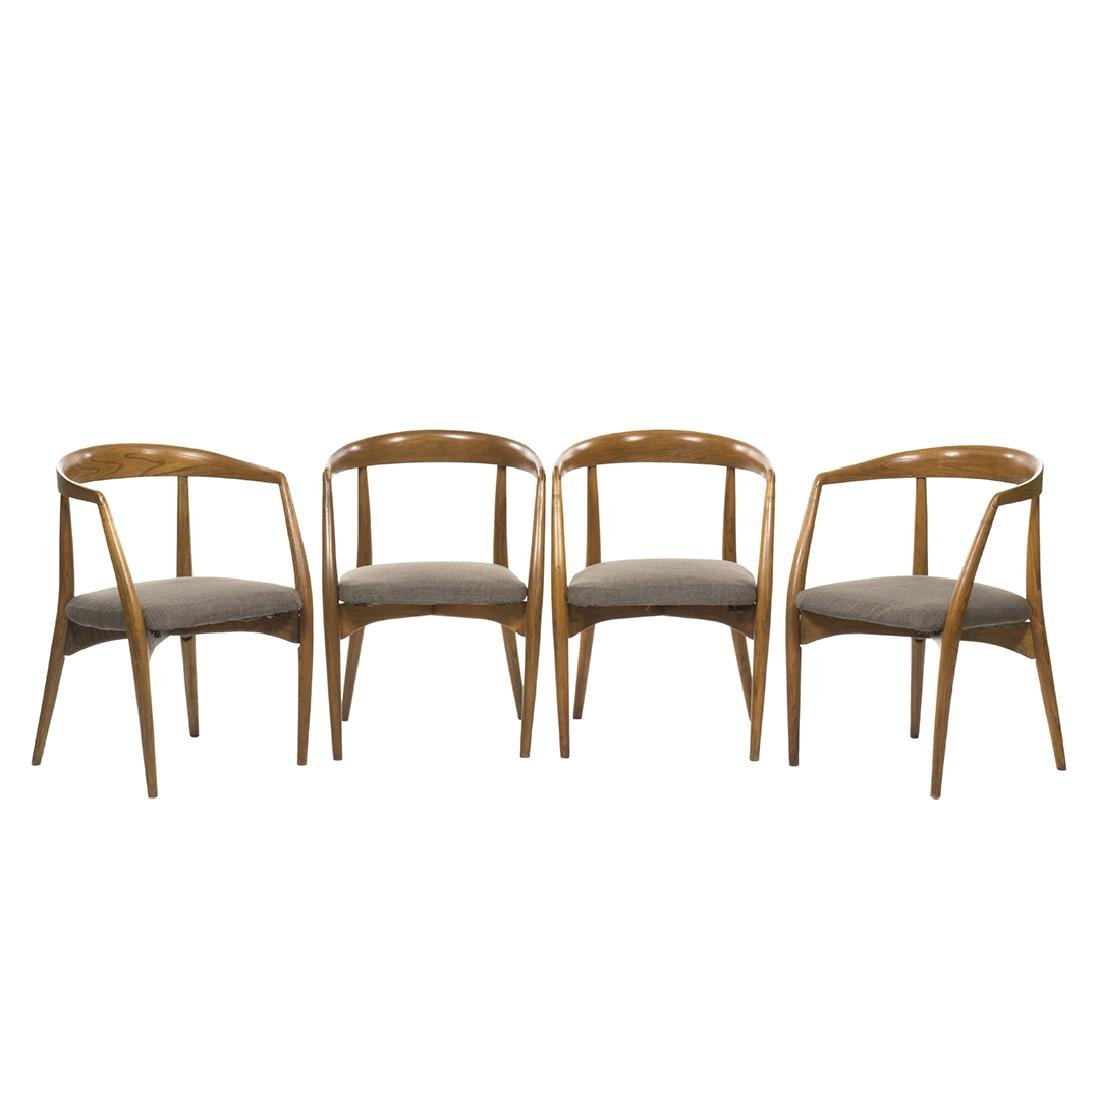 Lawrence Peabody Dining Chairs (4)